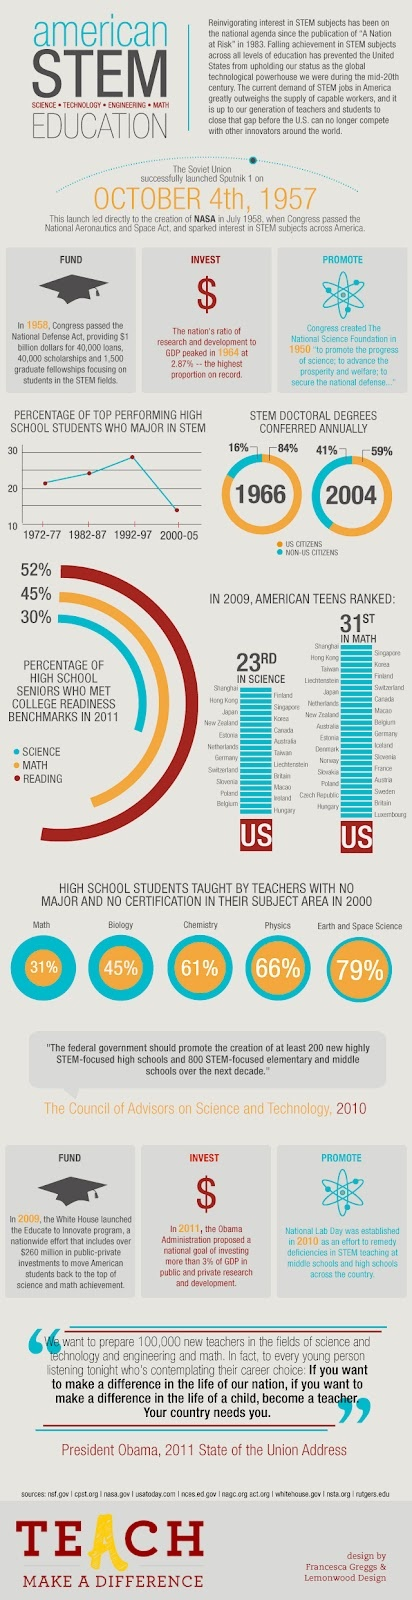 Infographic: American #STEM Education #careerteched